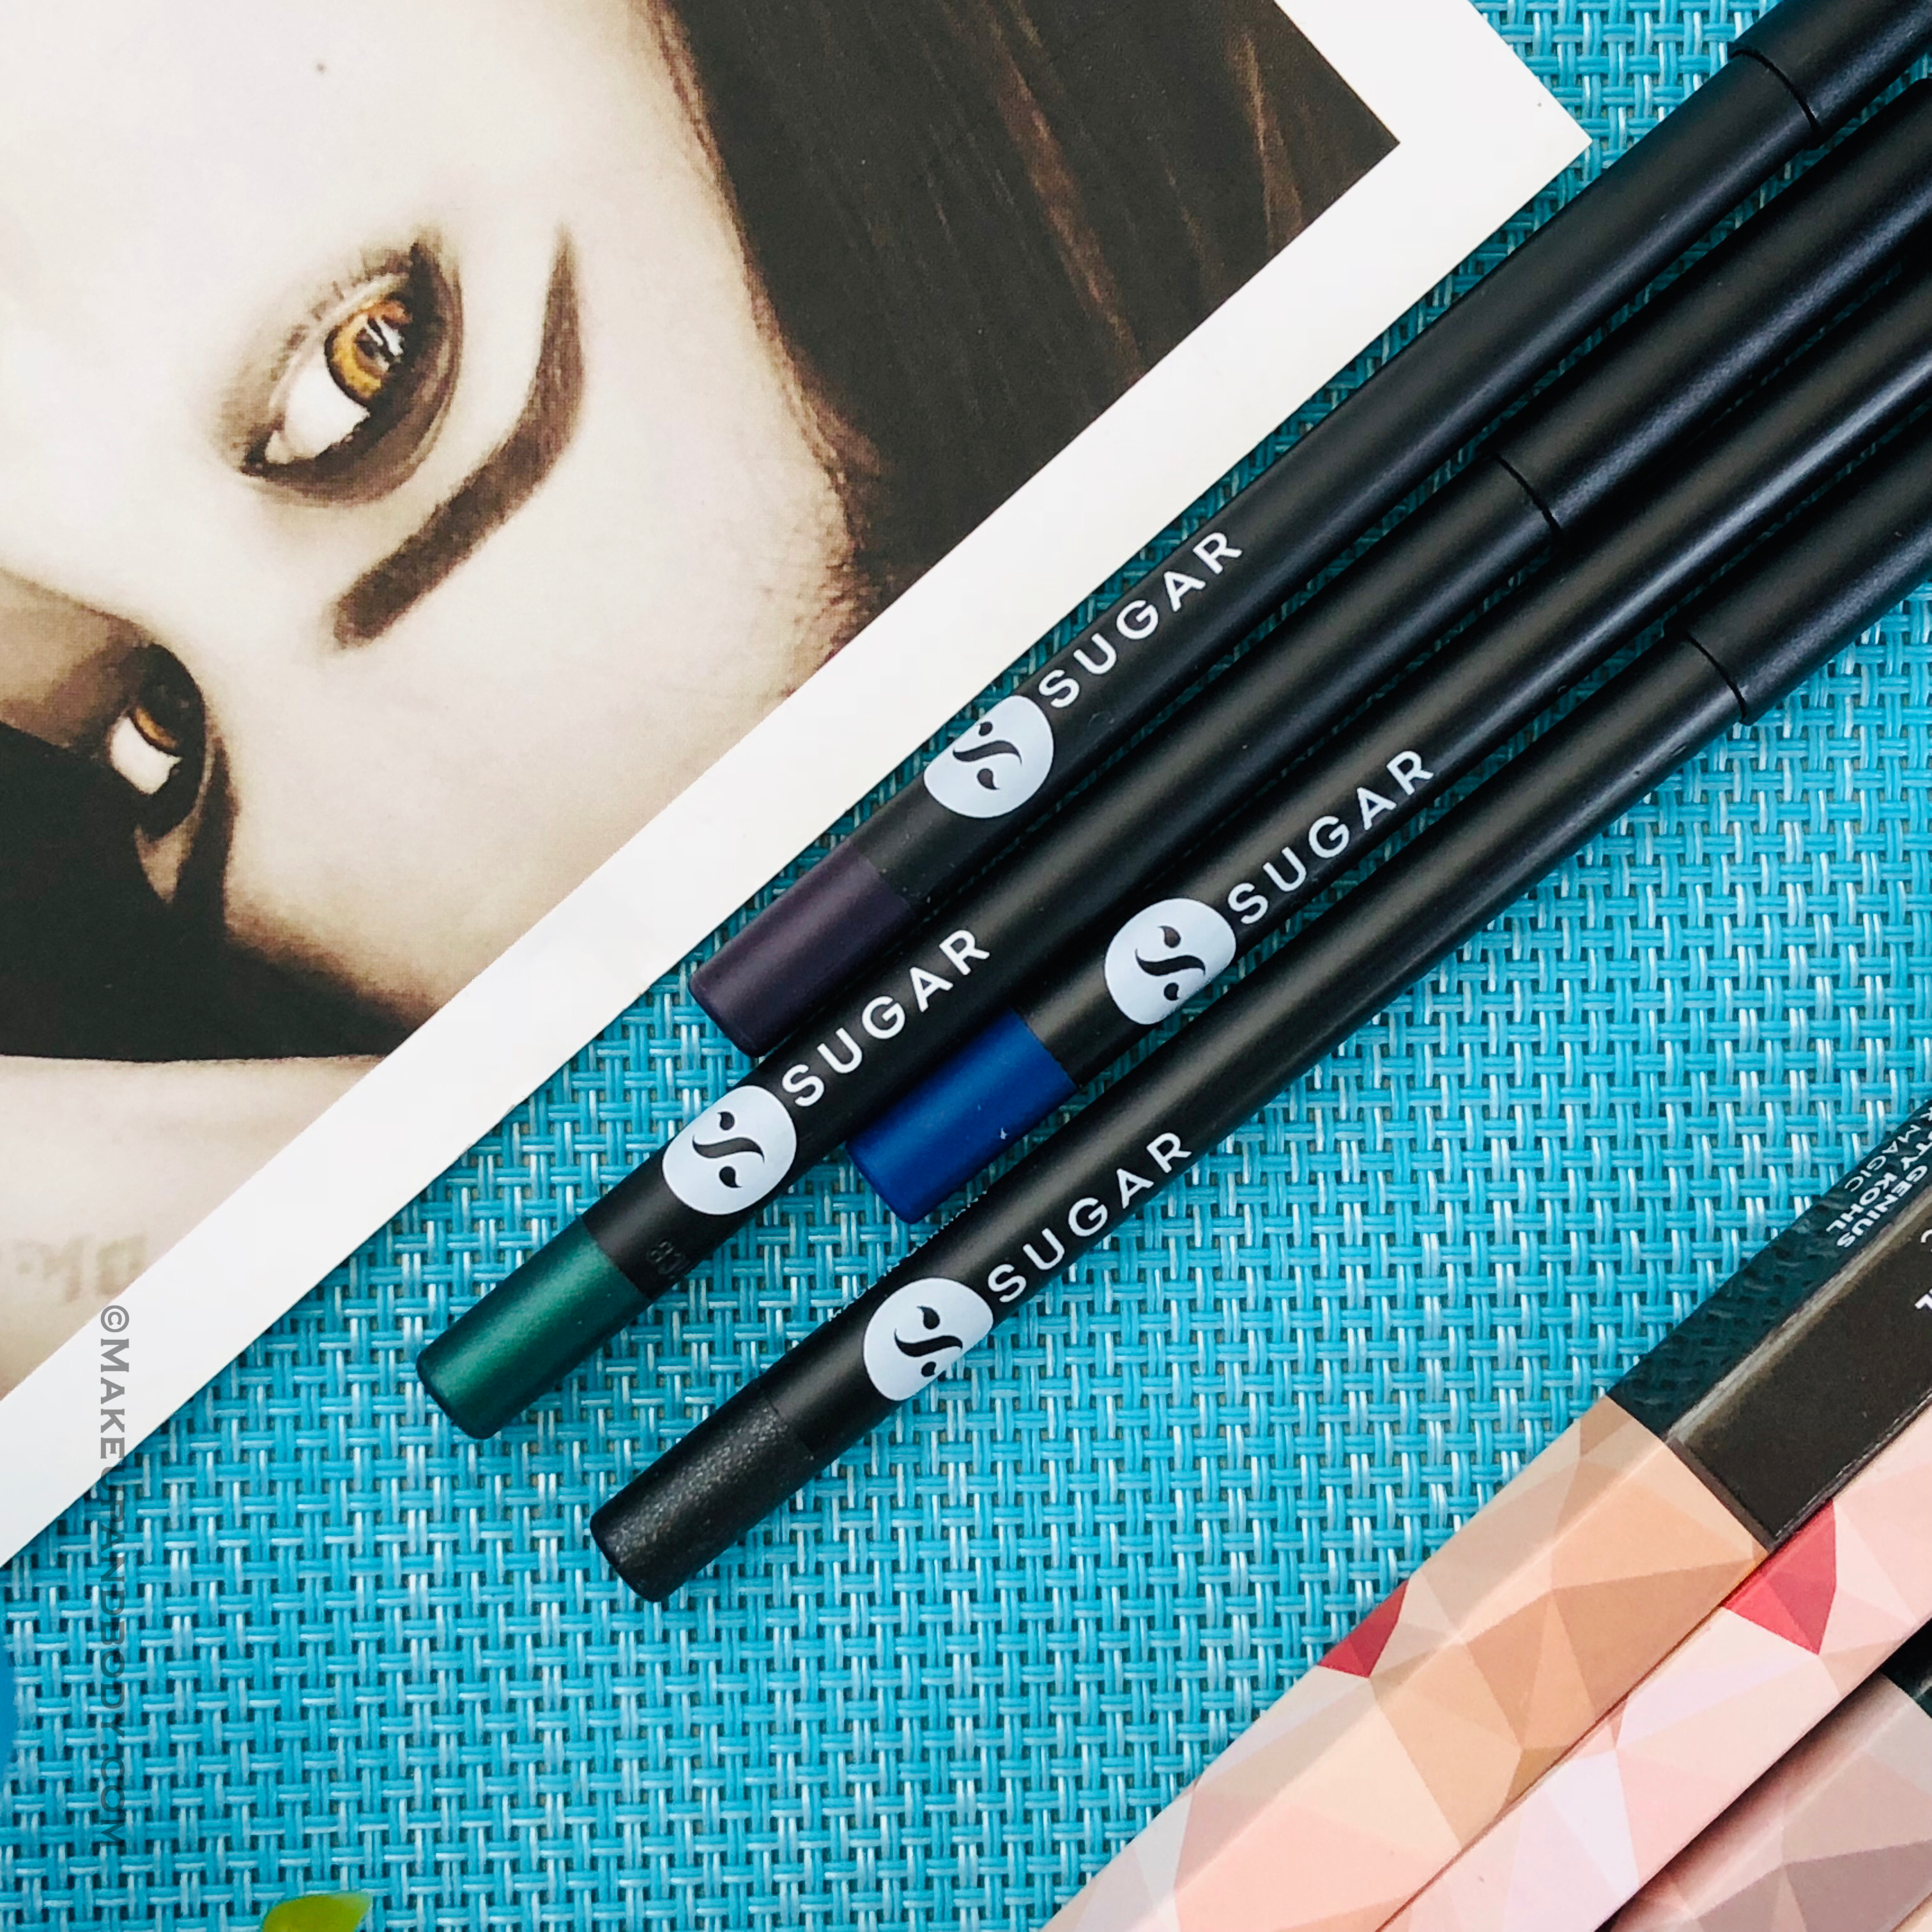 SUGAR Stroke of Genius Heavy-Duty Kohl- Review And Swatches For 4 New Shades